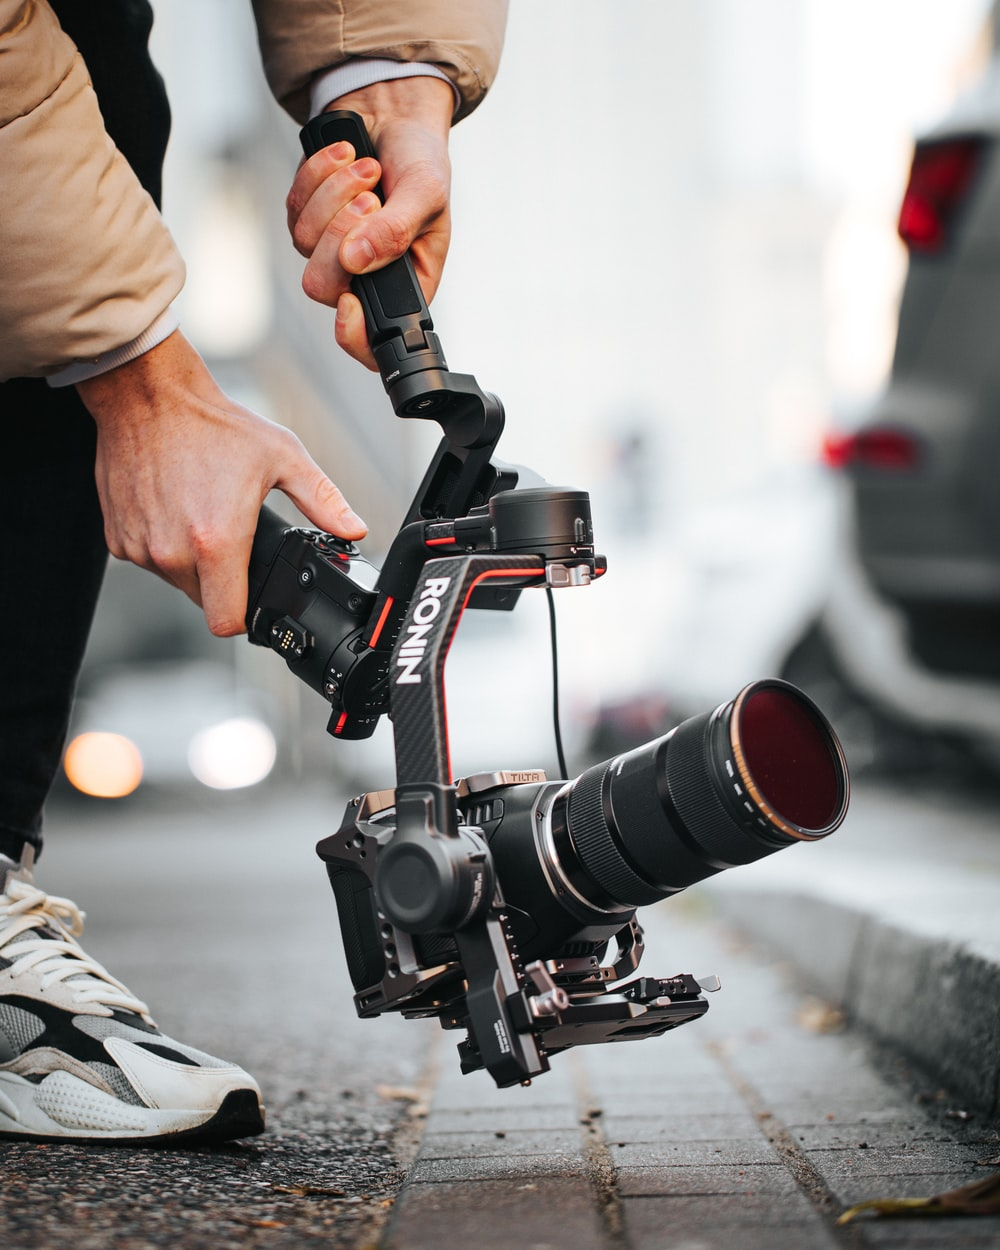 person holding black and red dslr camera